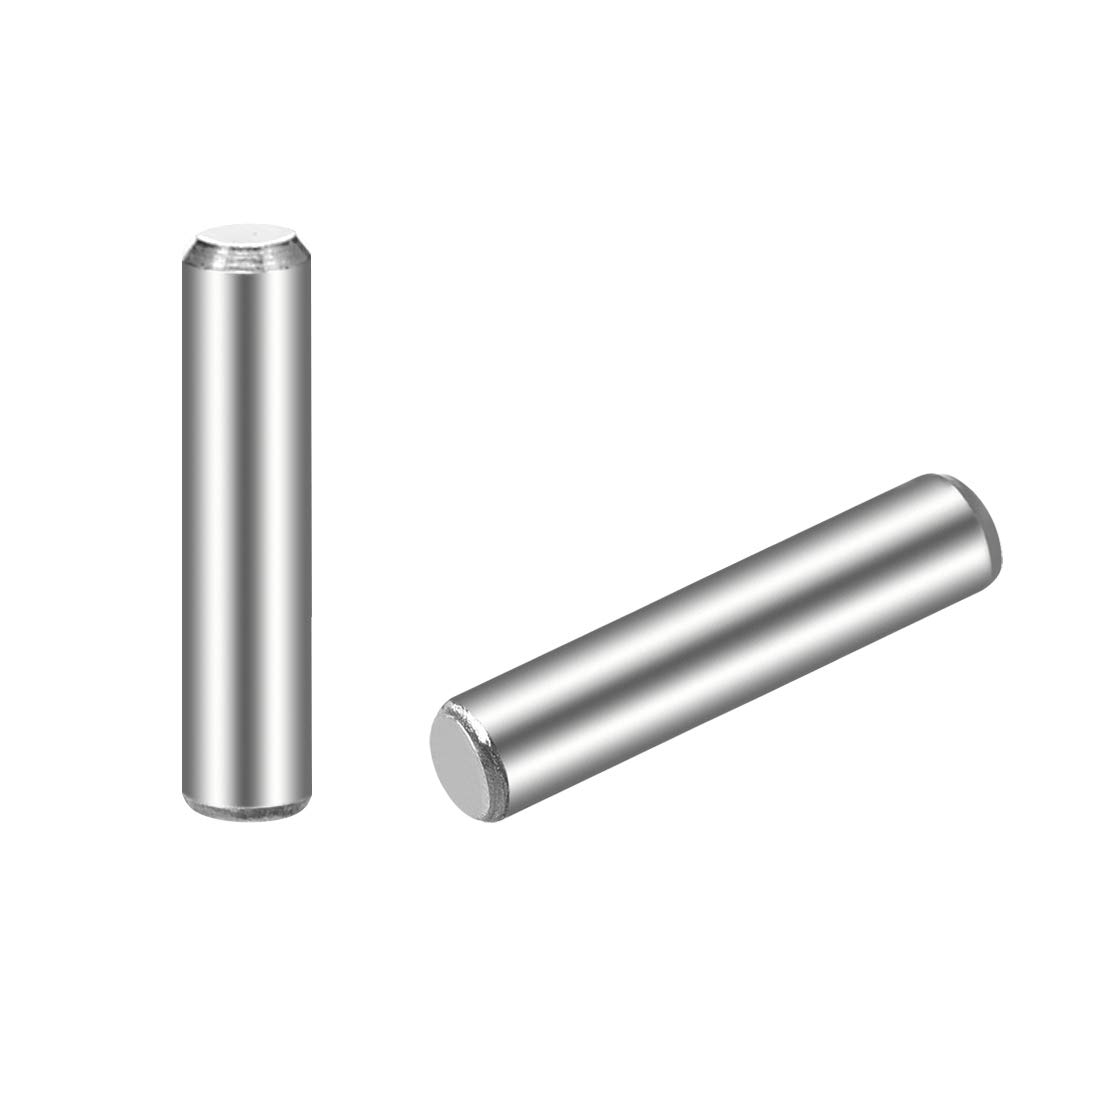 """uxcell 3 x 14mm(Approx 1/8"""") Dowel Pin 304 Stainless Steel Wood Bunk Bed Dowel Pins Shelf Pegs Support Shelves 25Pcs"""